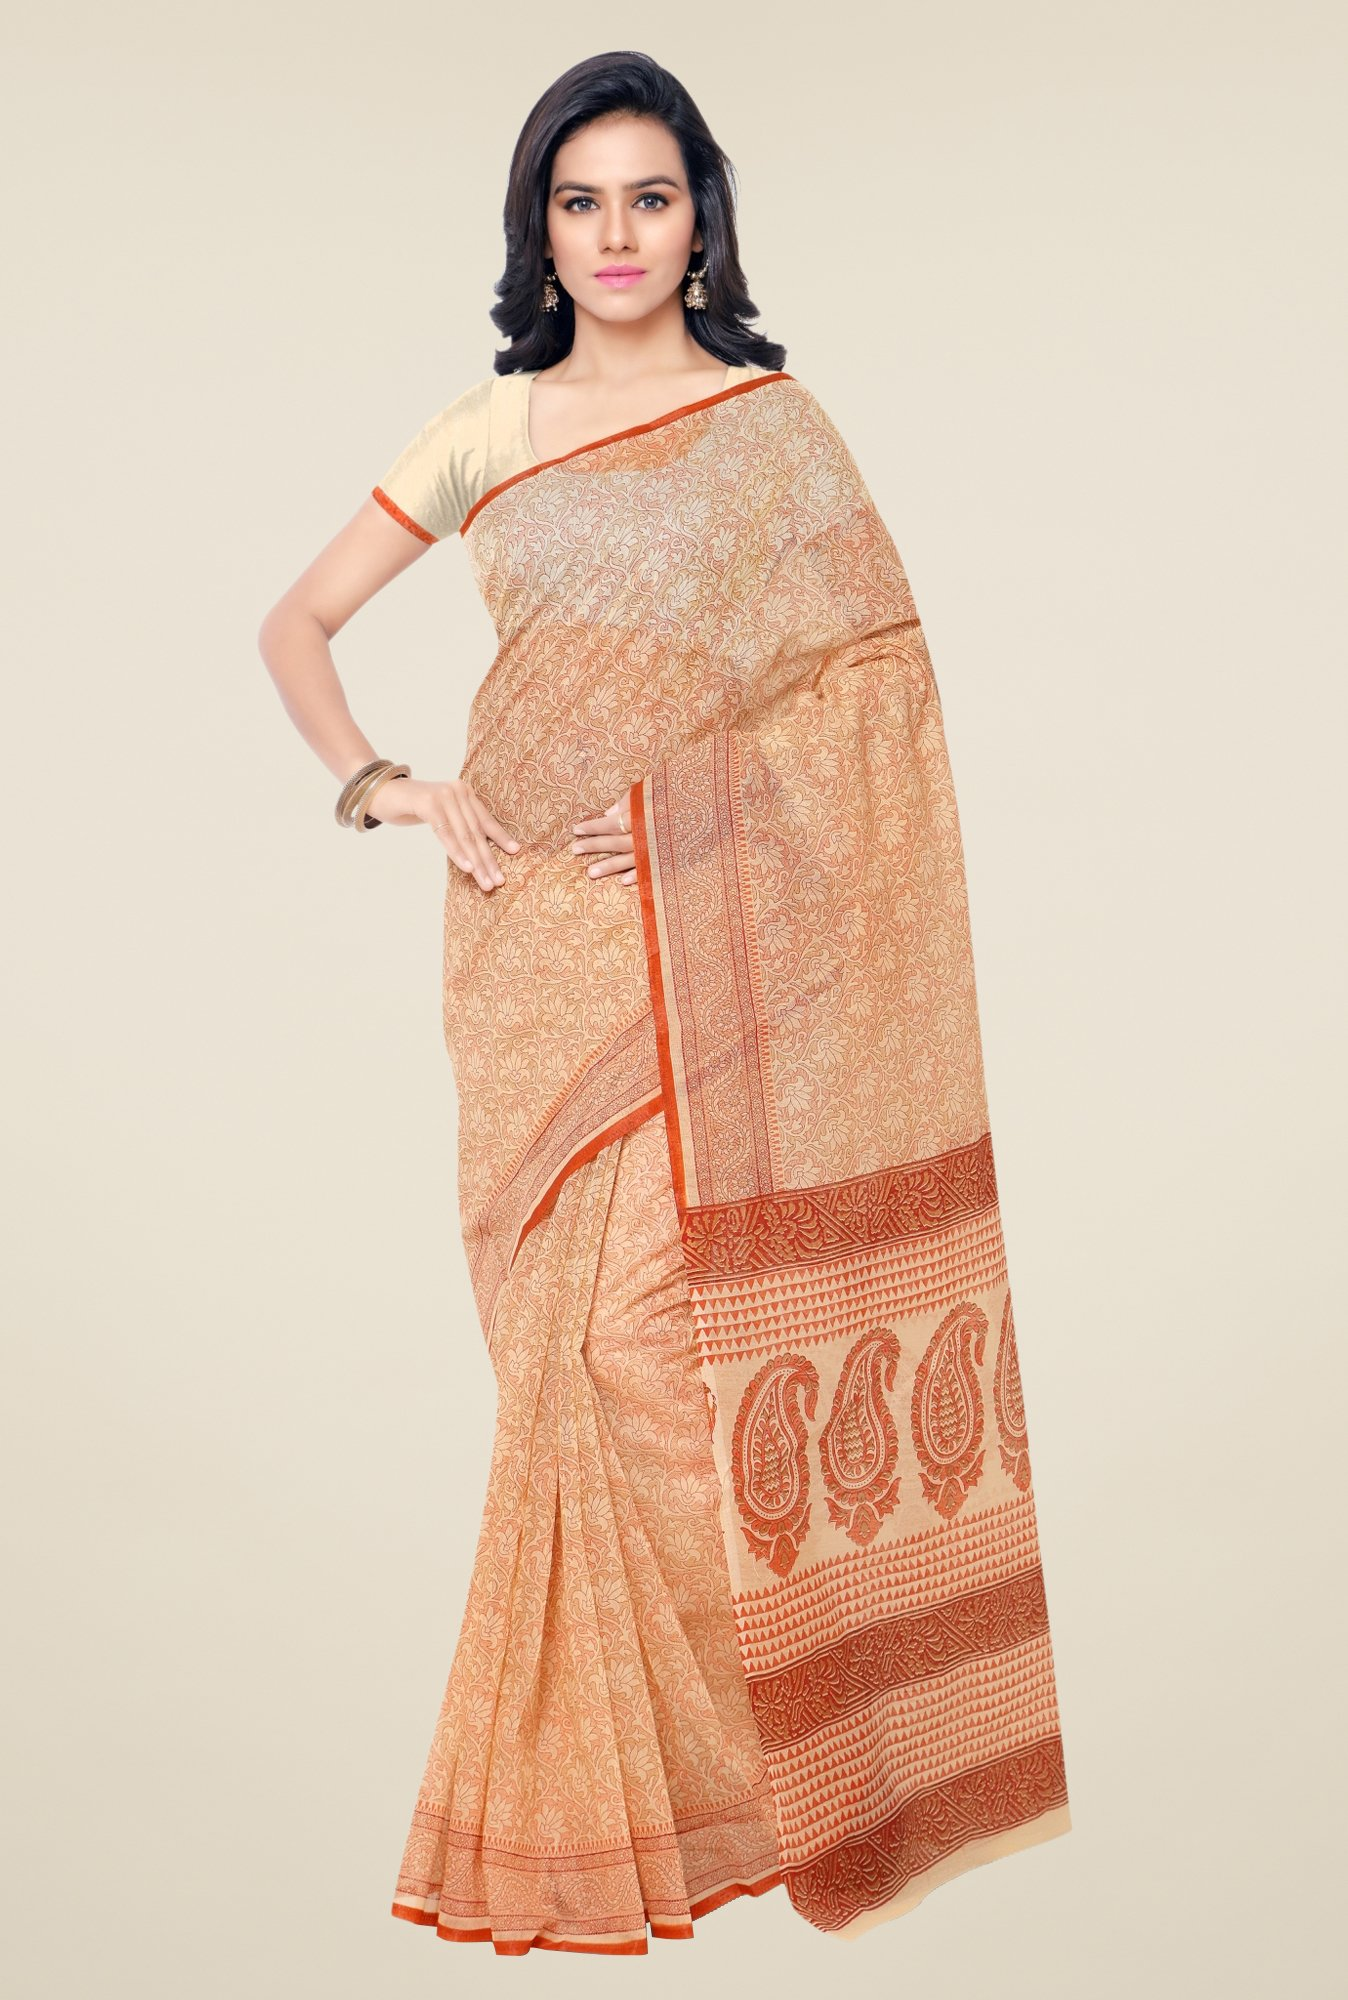 Triveni Beige & Orange Printed Blended Cotton Saree